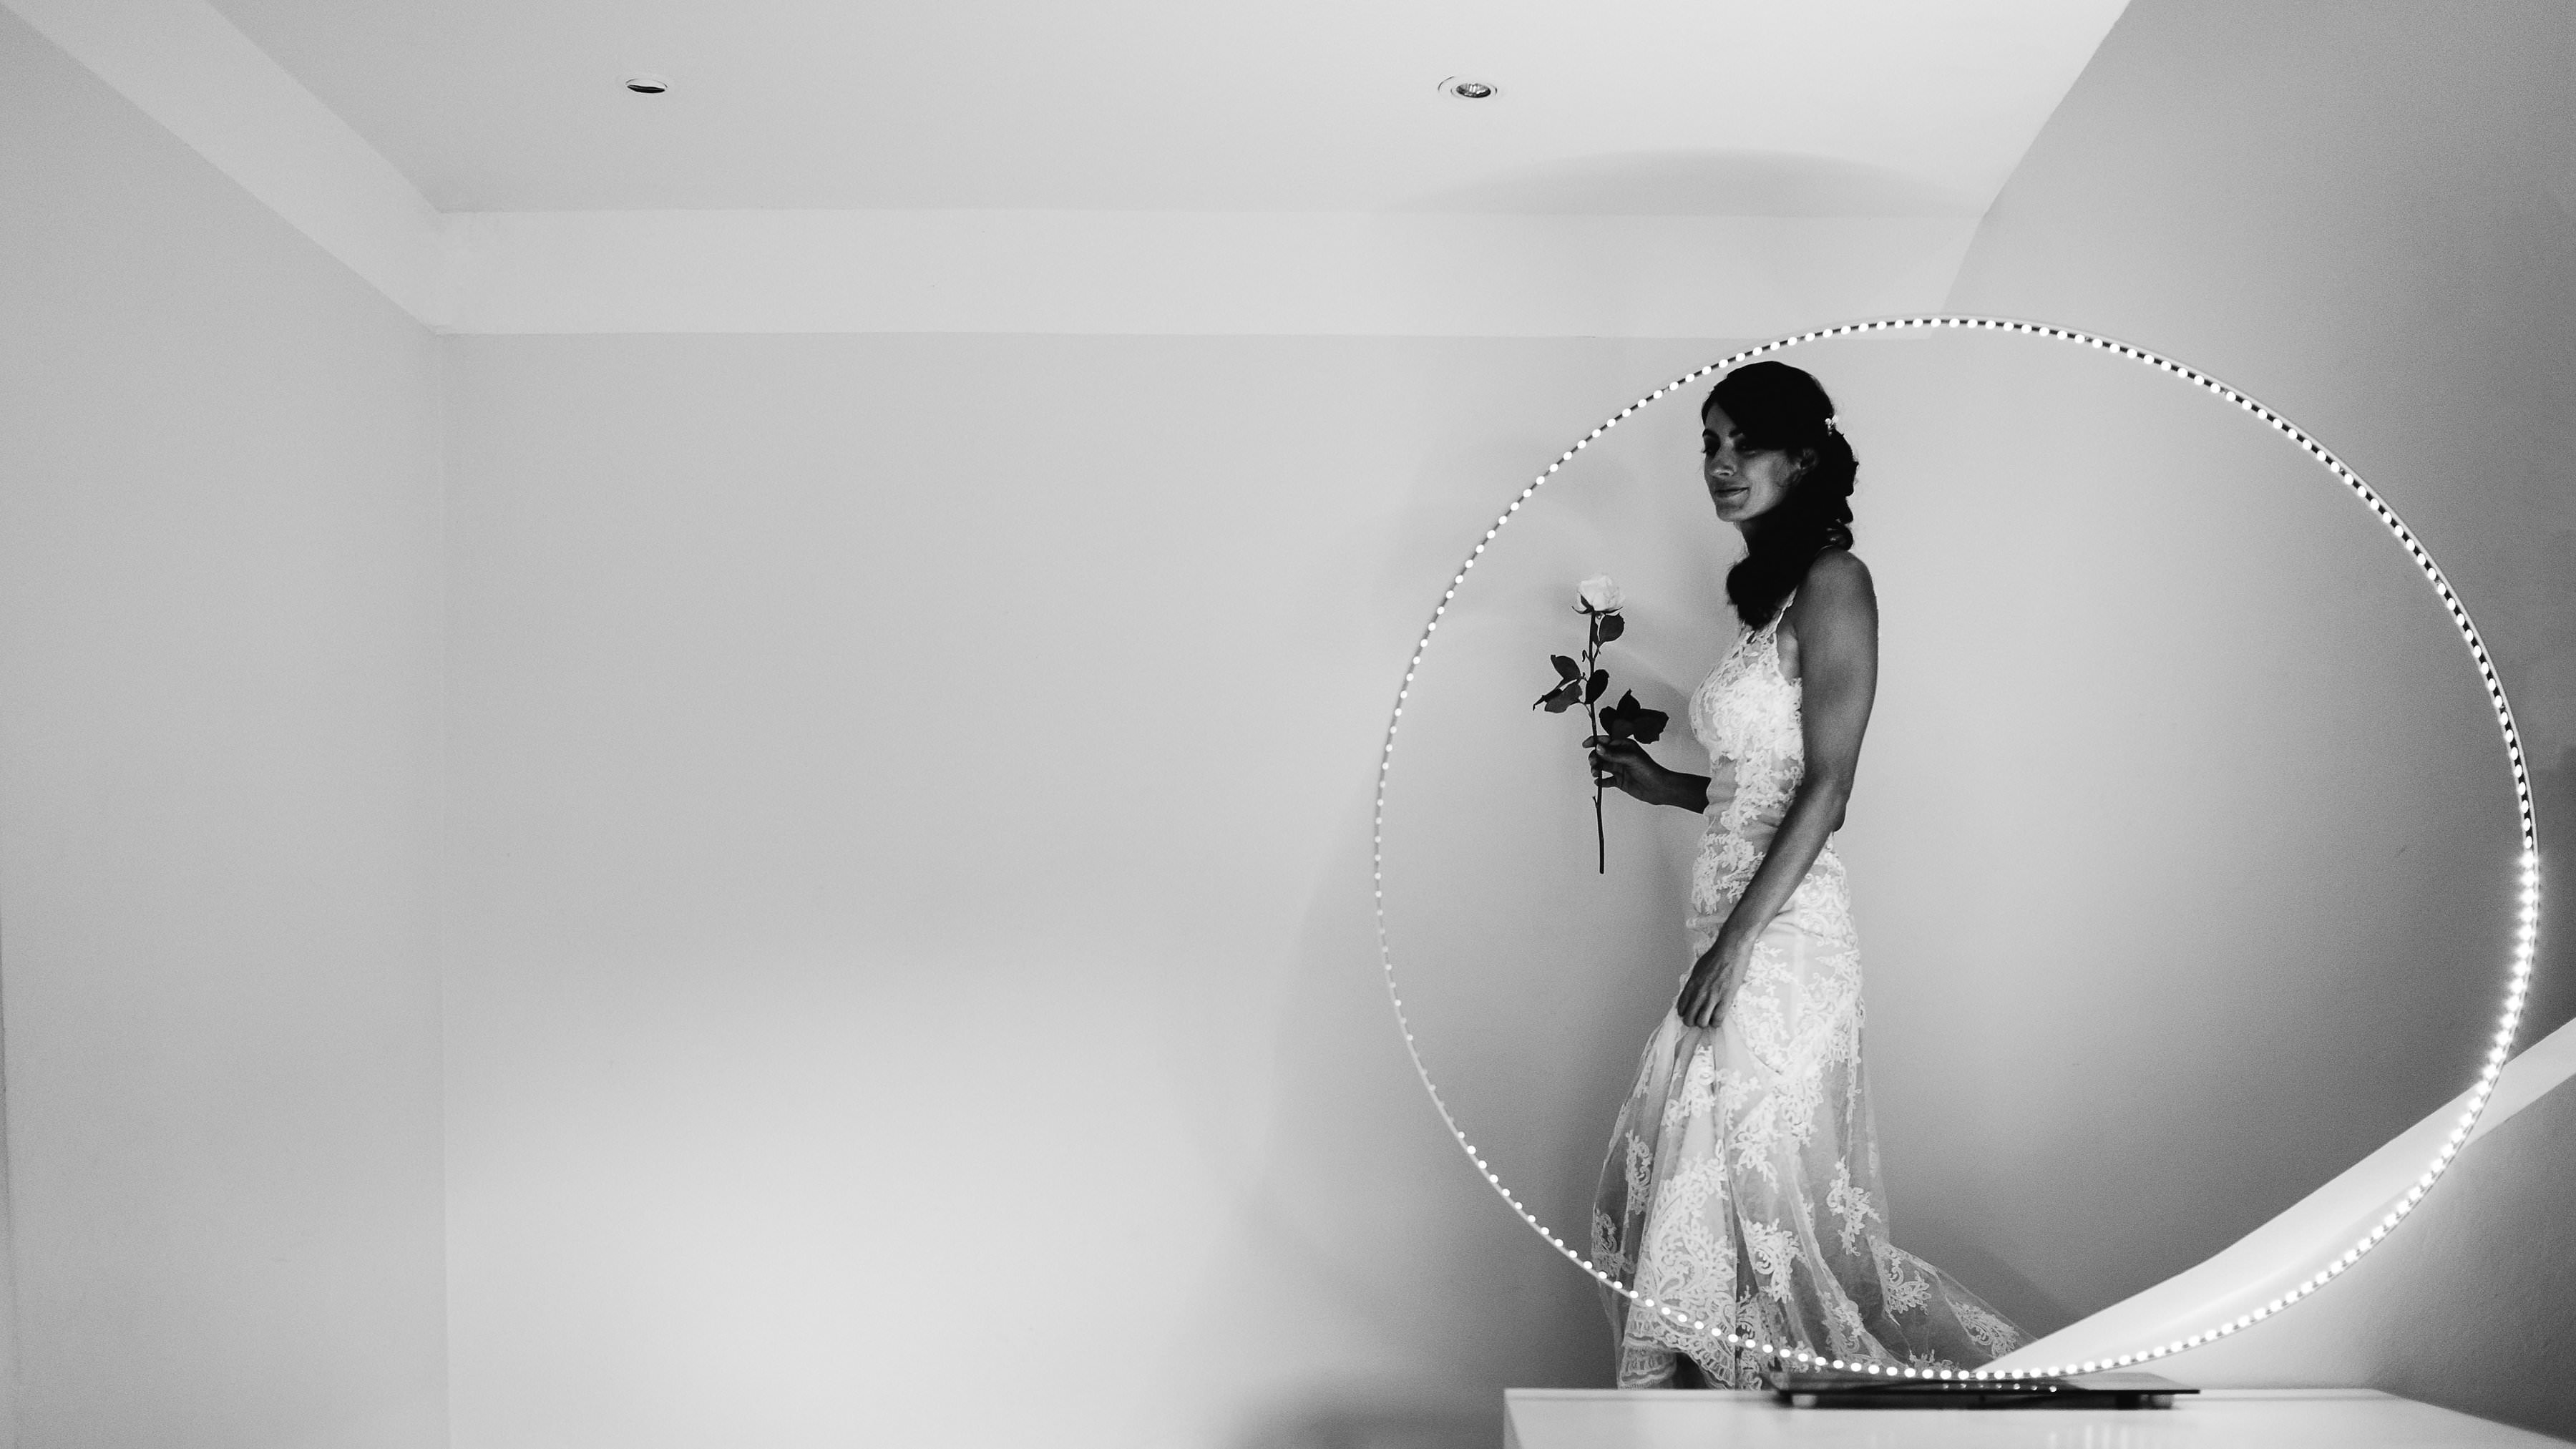 for a destination wedding in South of France with Muriel Saldalamacchia and photos by Garderes & Dohmen